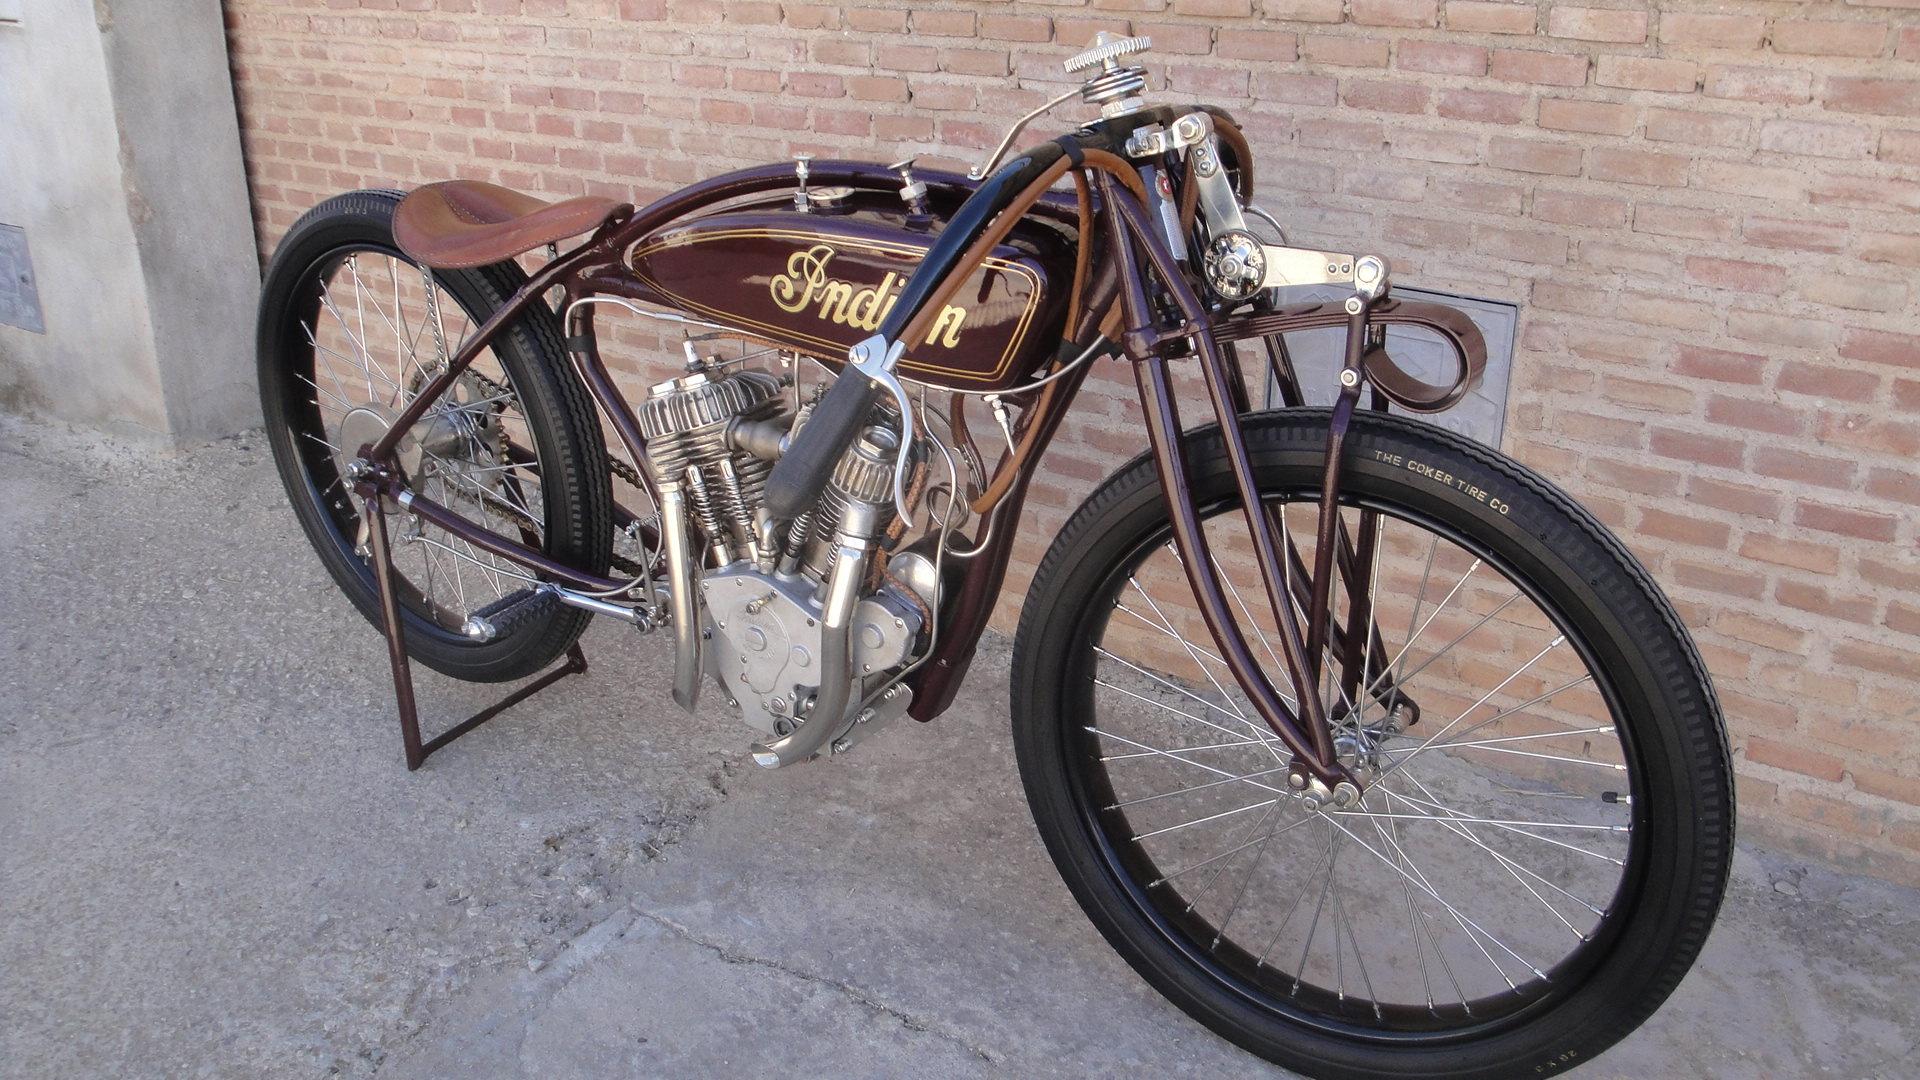 1919 Indian daytona racer 1000cc sv  For Sale (picture 3 of 6)